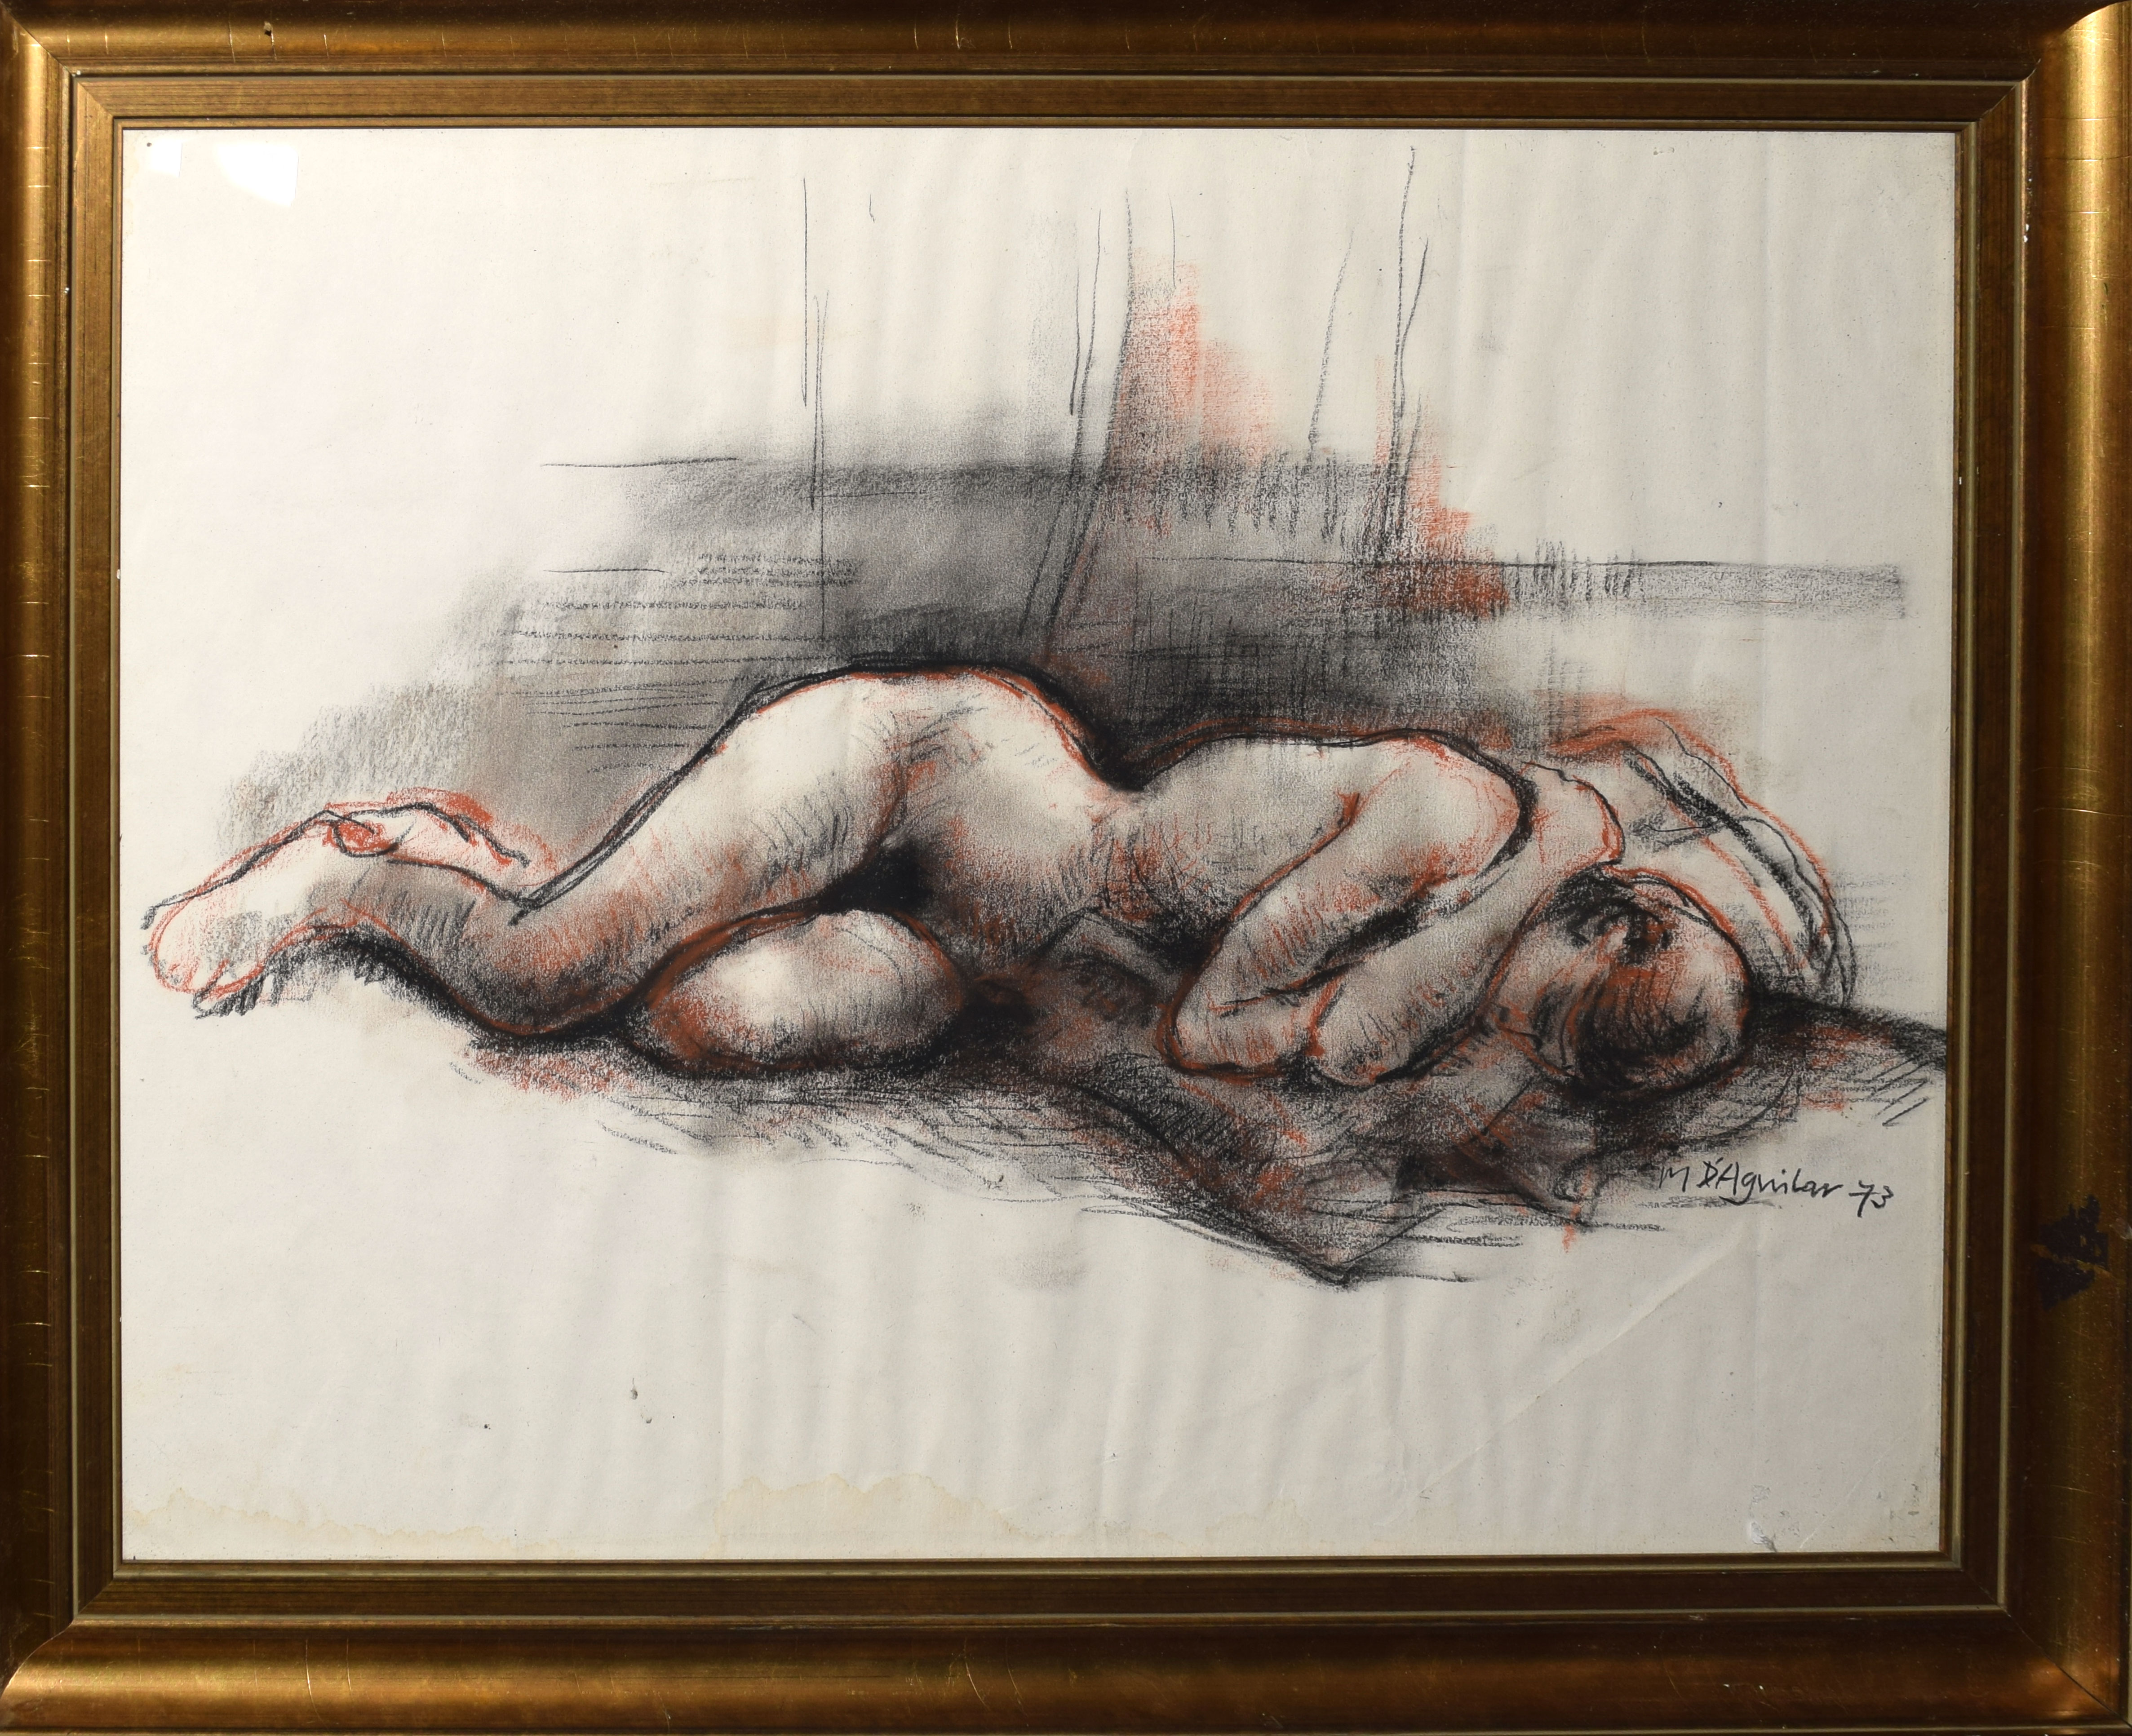 Michael D'Aguilar, Sleeping nude, crayon drawing, signed and dated 73 lower right, 38 x 48cm